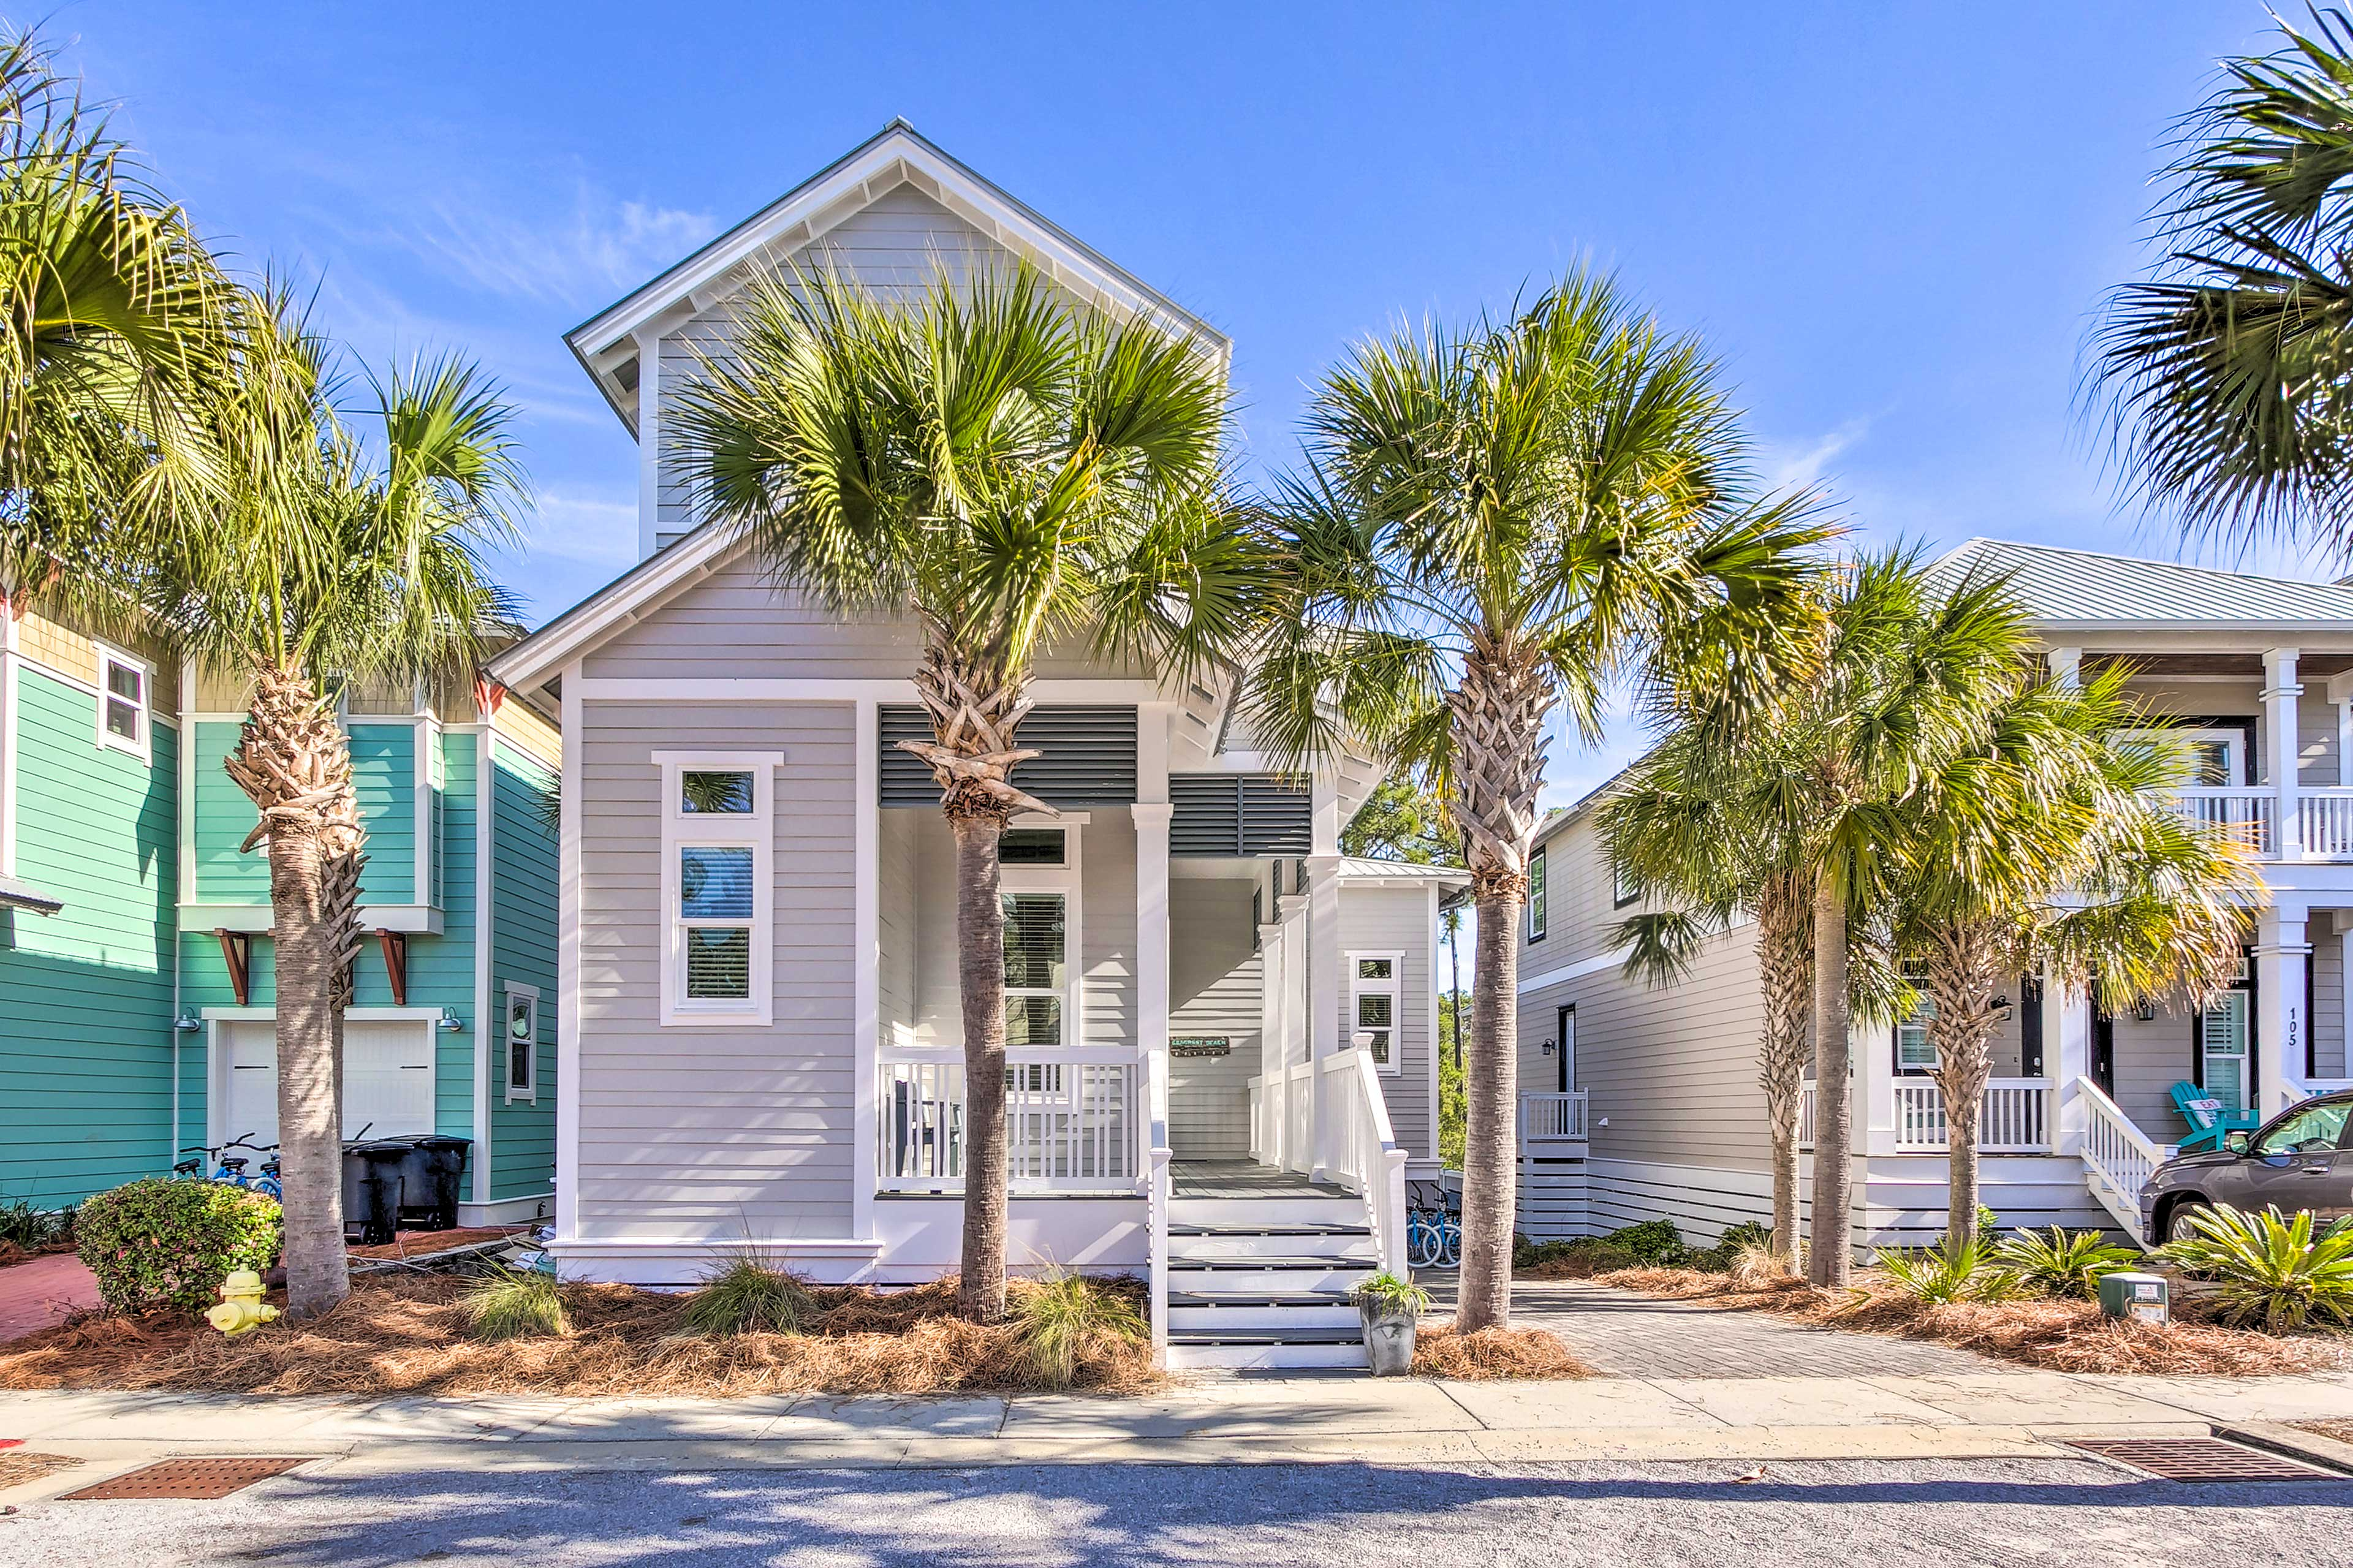 You'll be less than a 1-mile walk from the Gulf Coast shore!